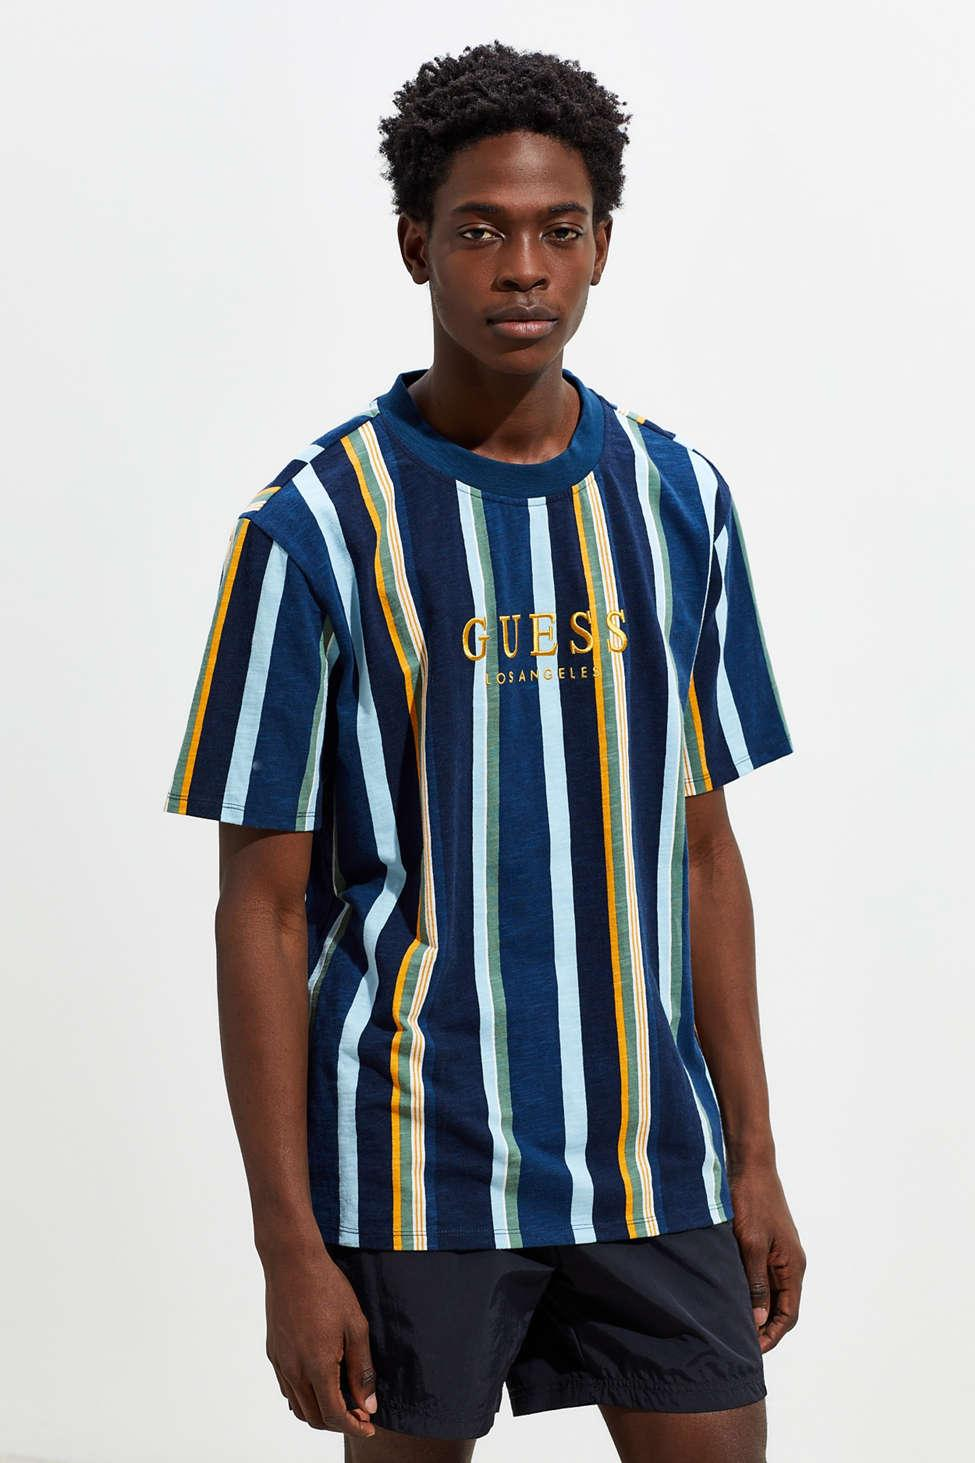 wholesale online 100% quality new specials Guess Sayer Striped Tee